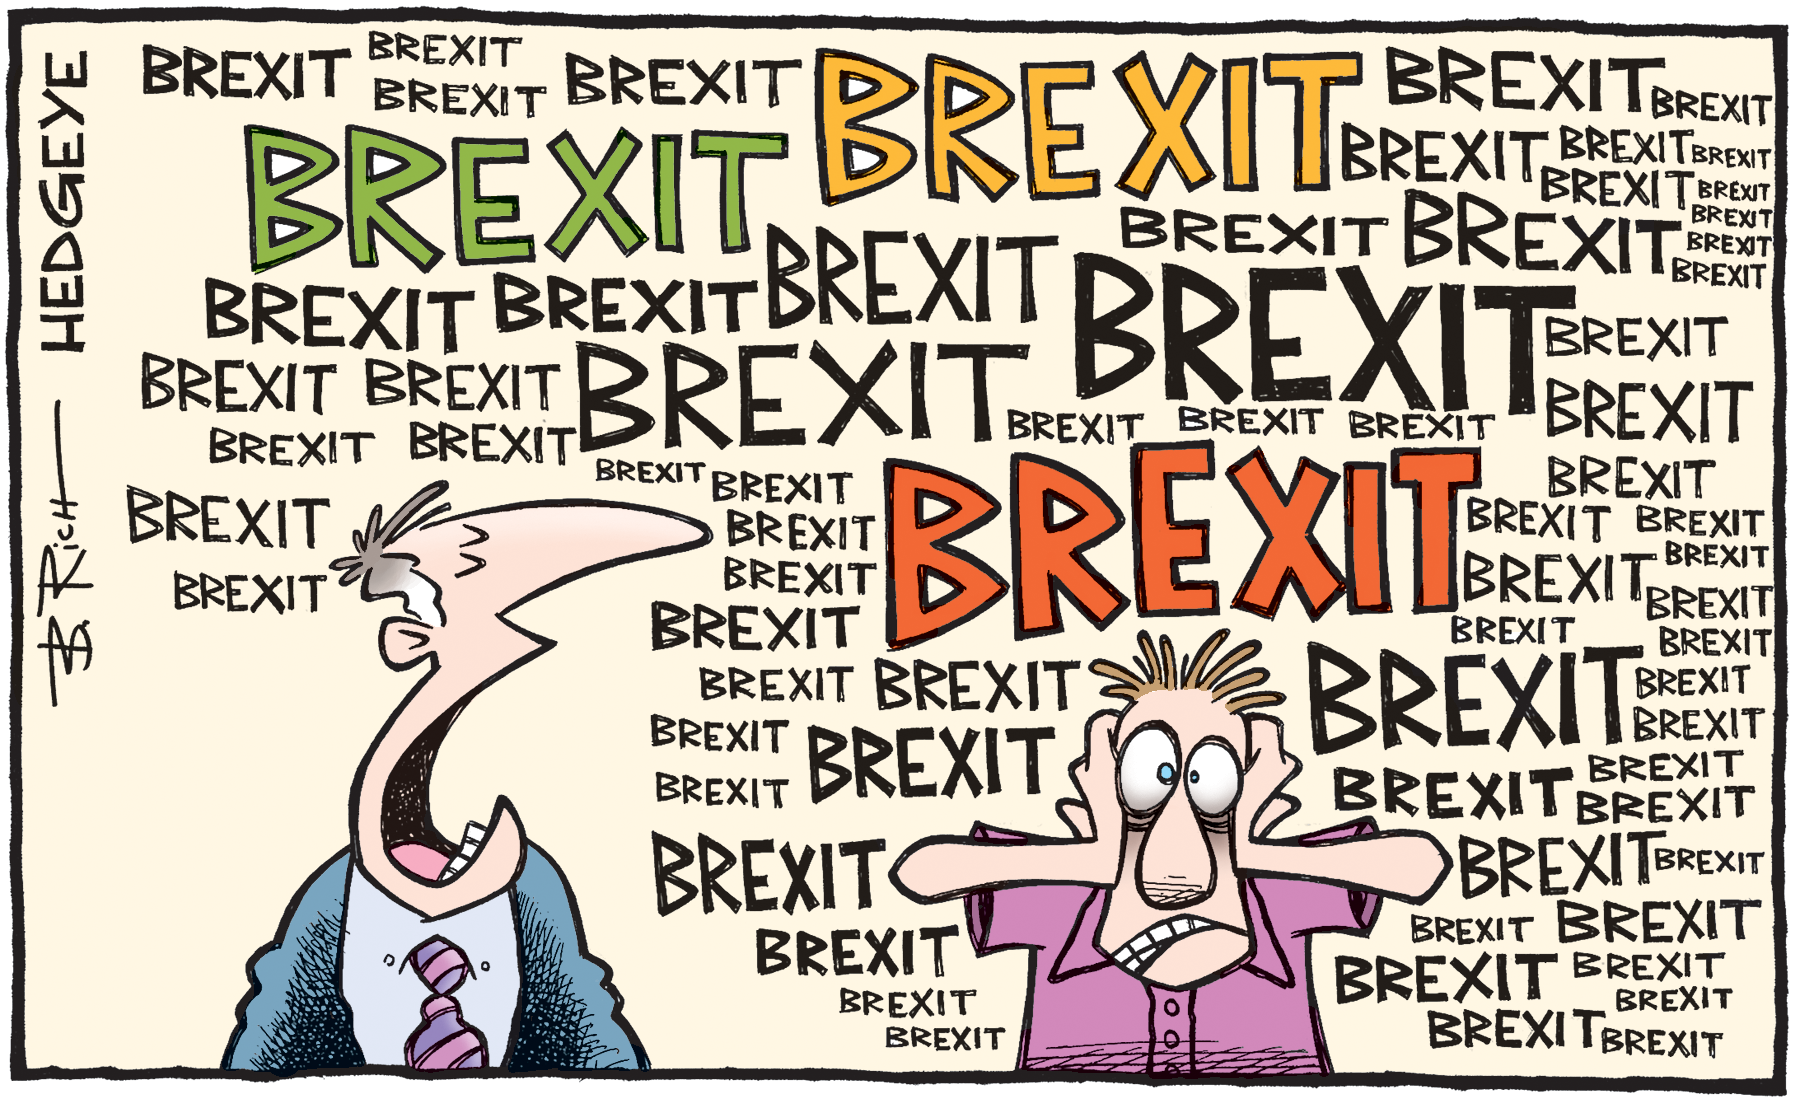 https://d1yhils6iwh5l5.cloudfront.net/charts/resized/41458/original/Brexit_cartoon_06.23.2016.png